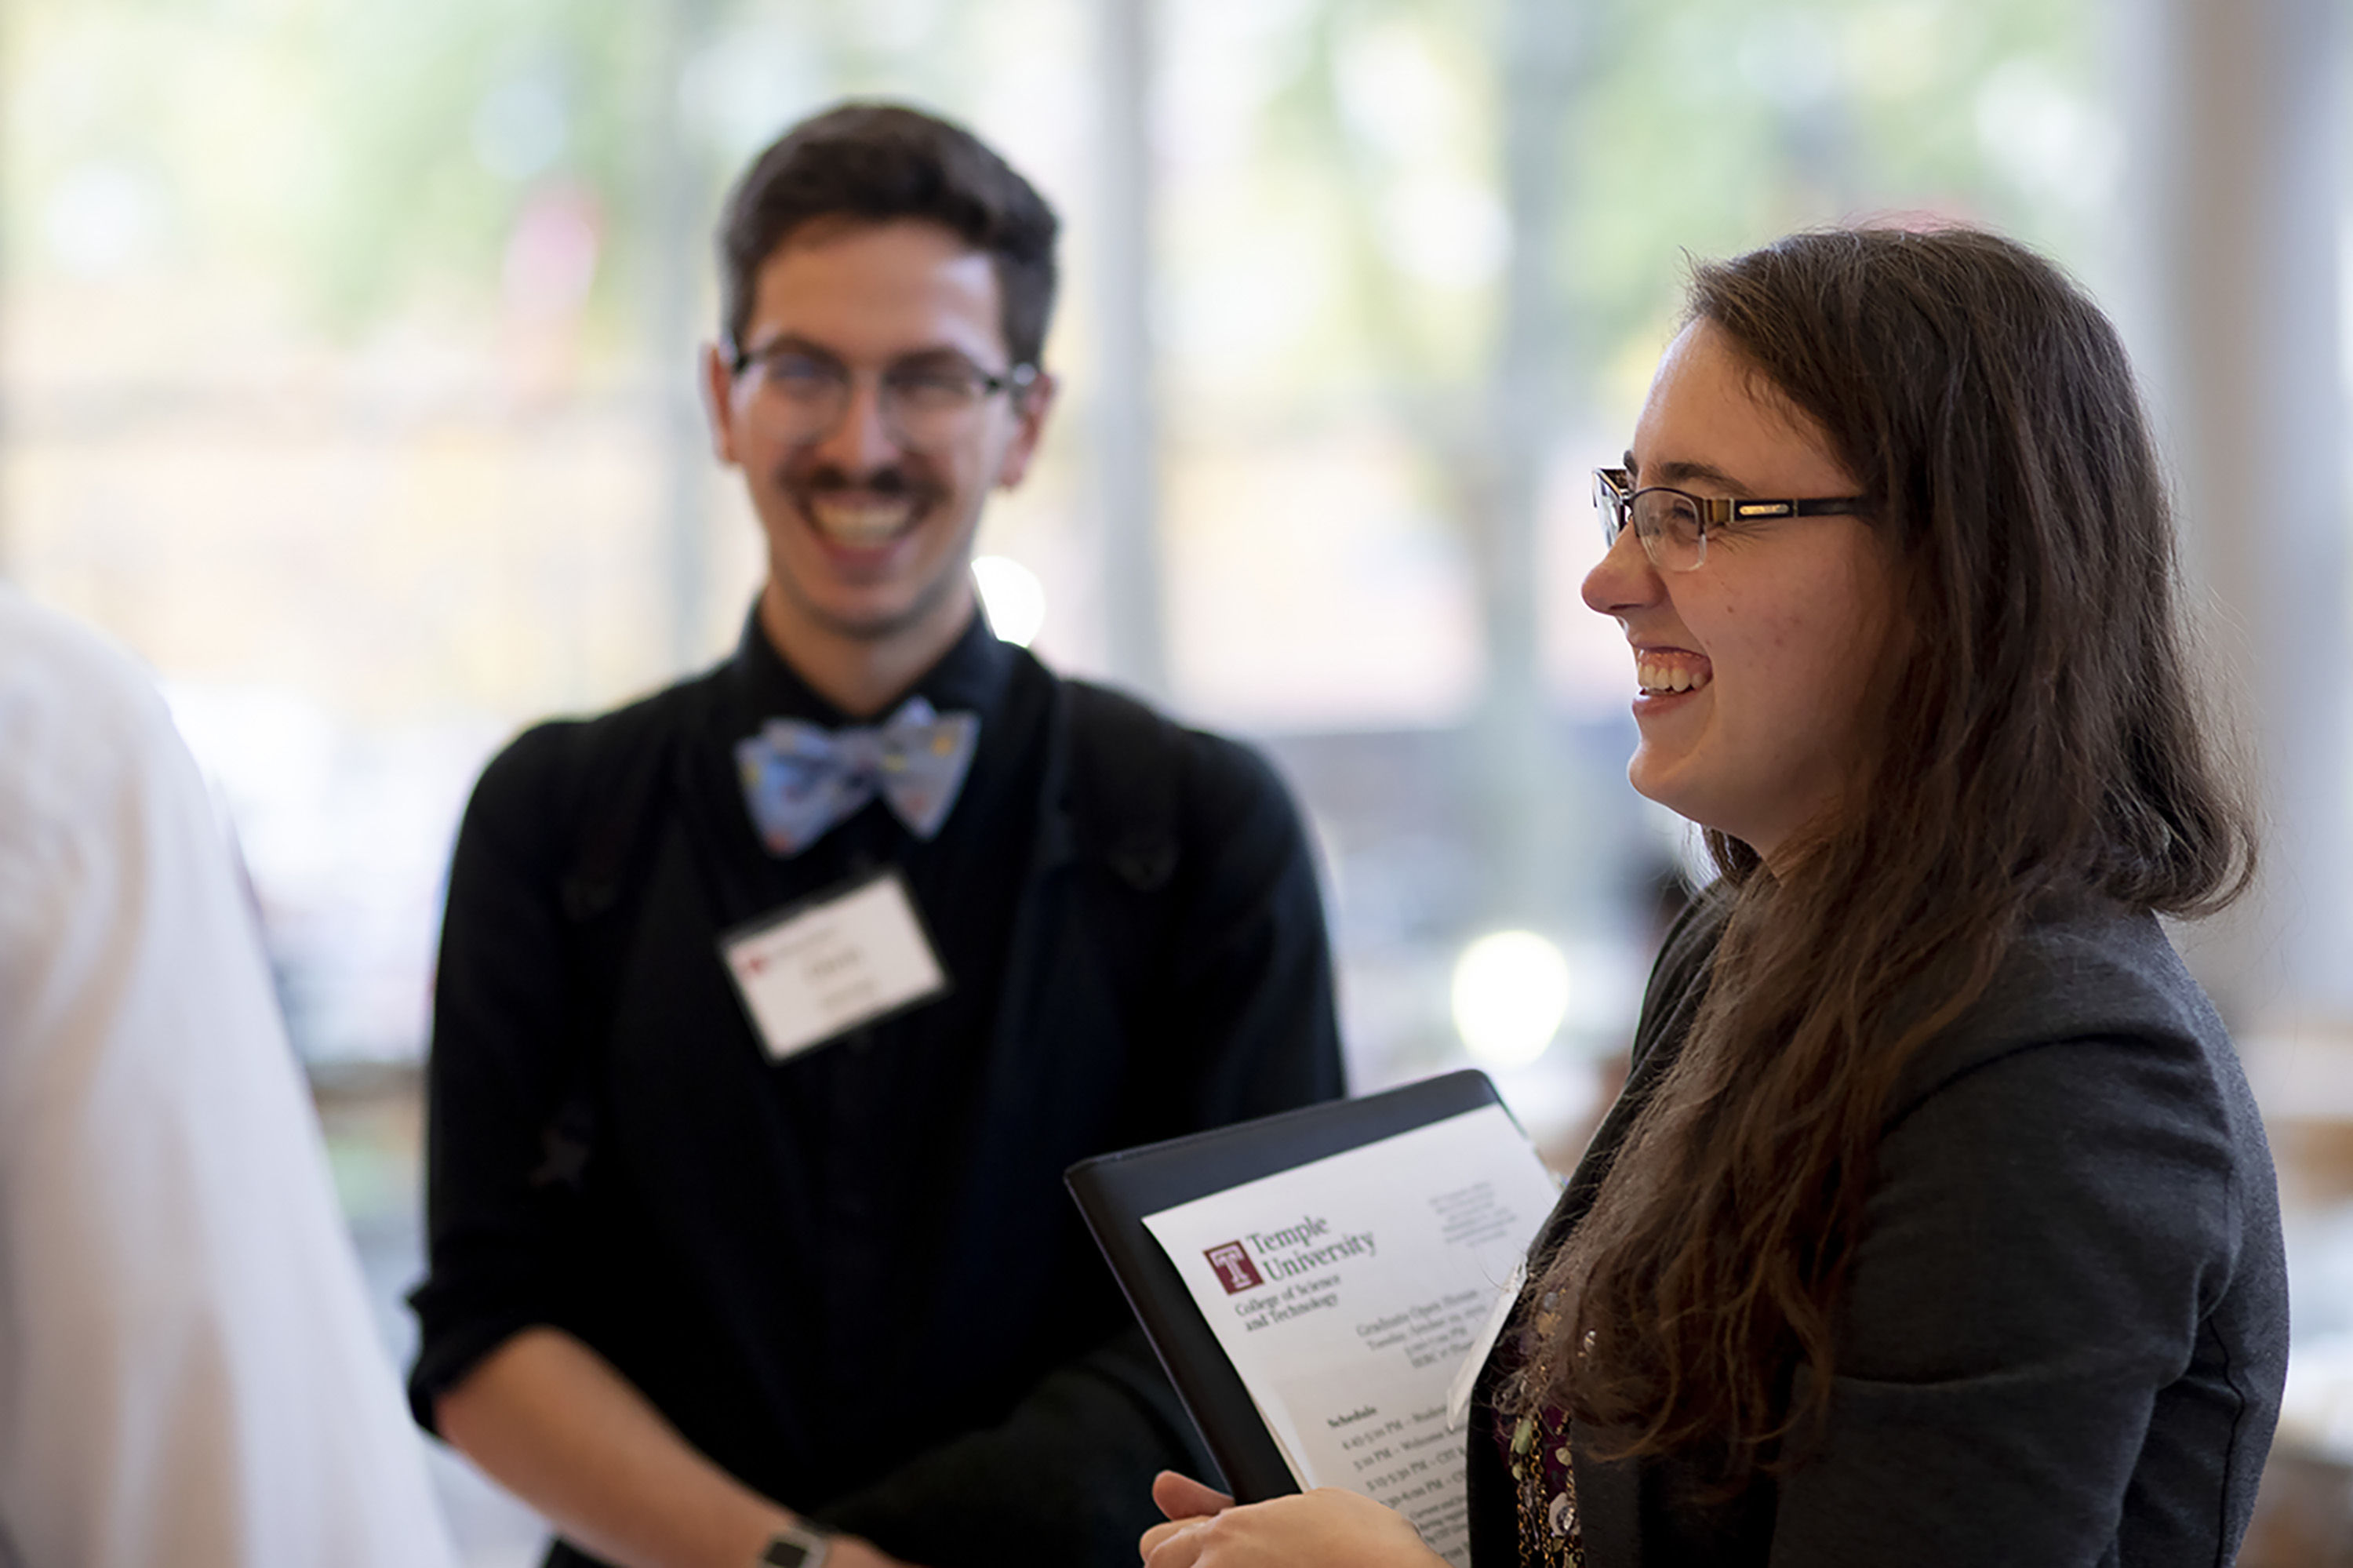 College of Science and Technology grad open house